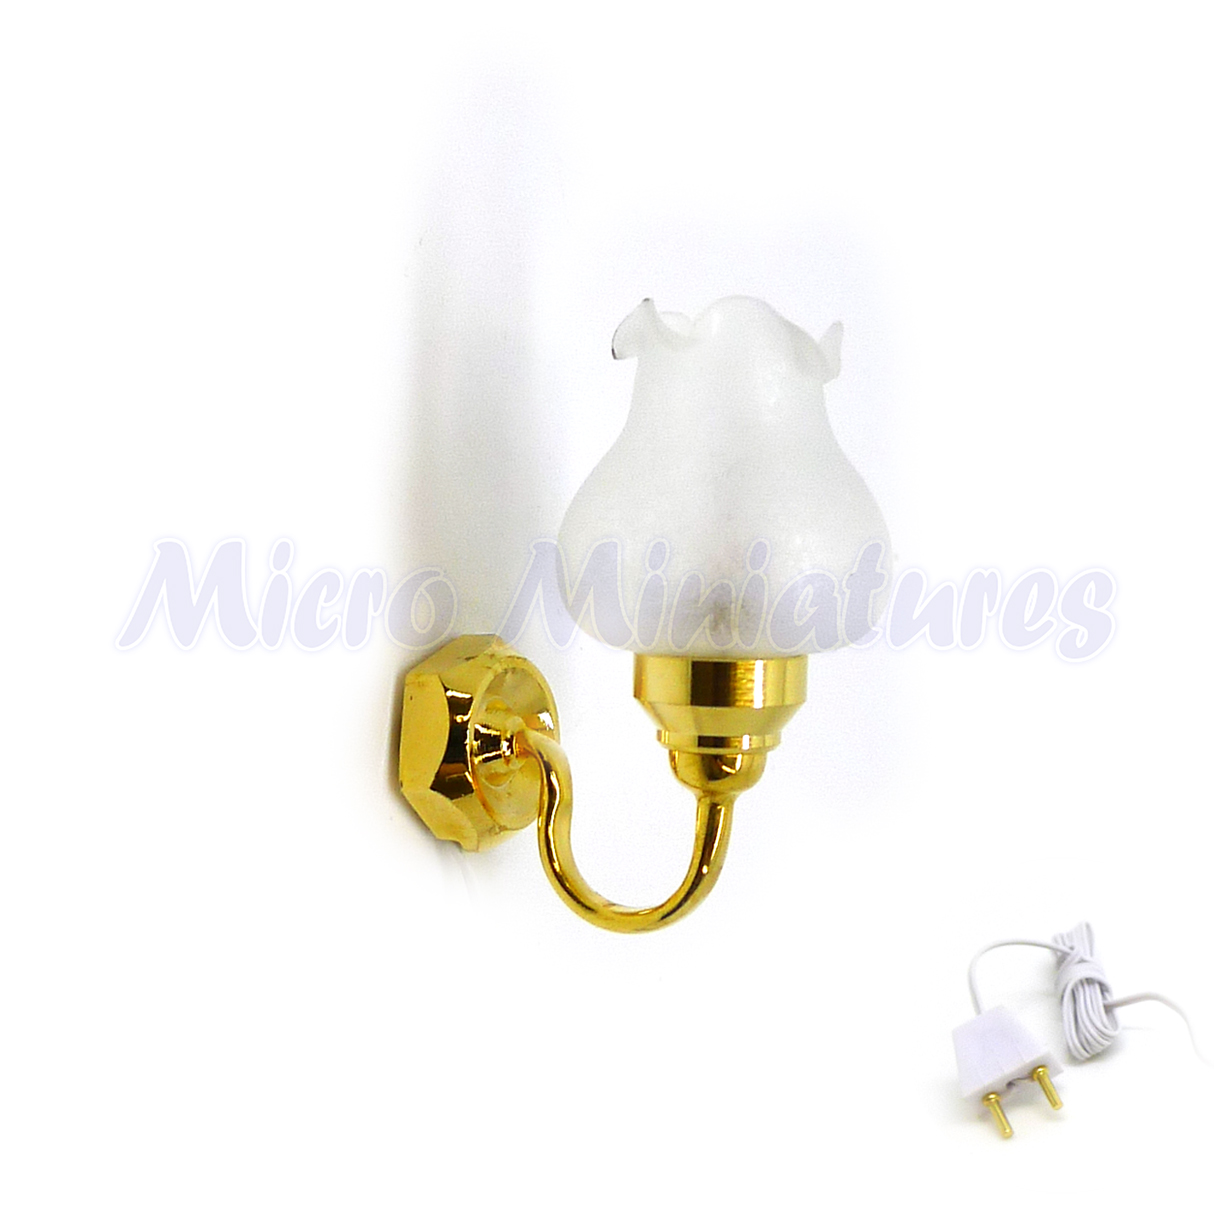 01439 Dolls House Floral Shade Wall Sconce 1//12th Scale